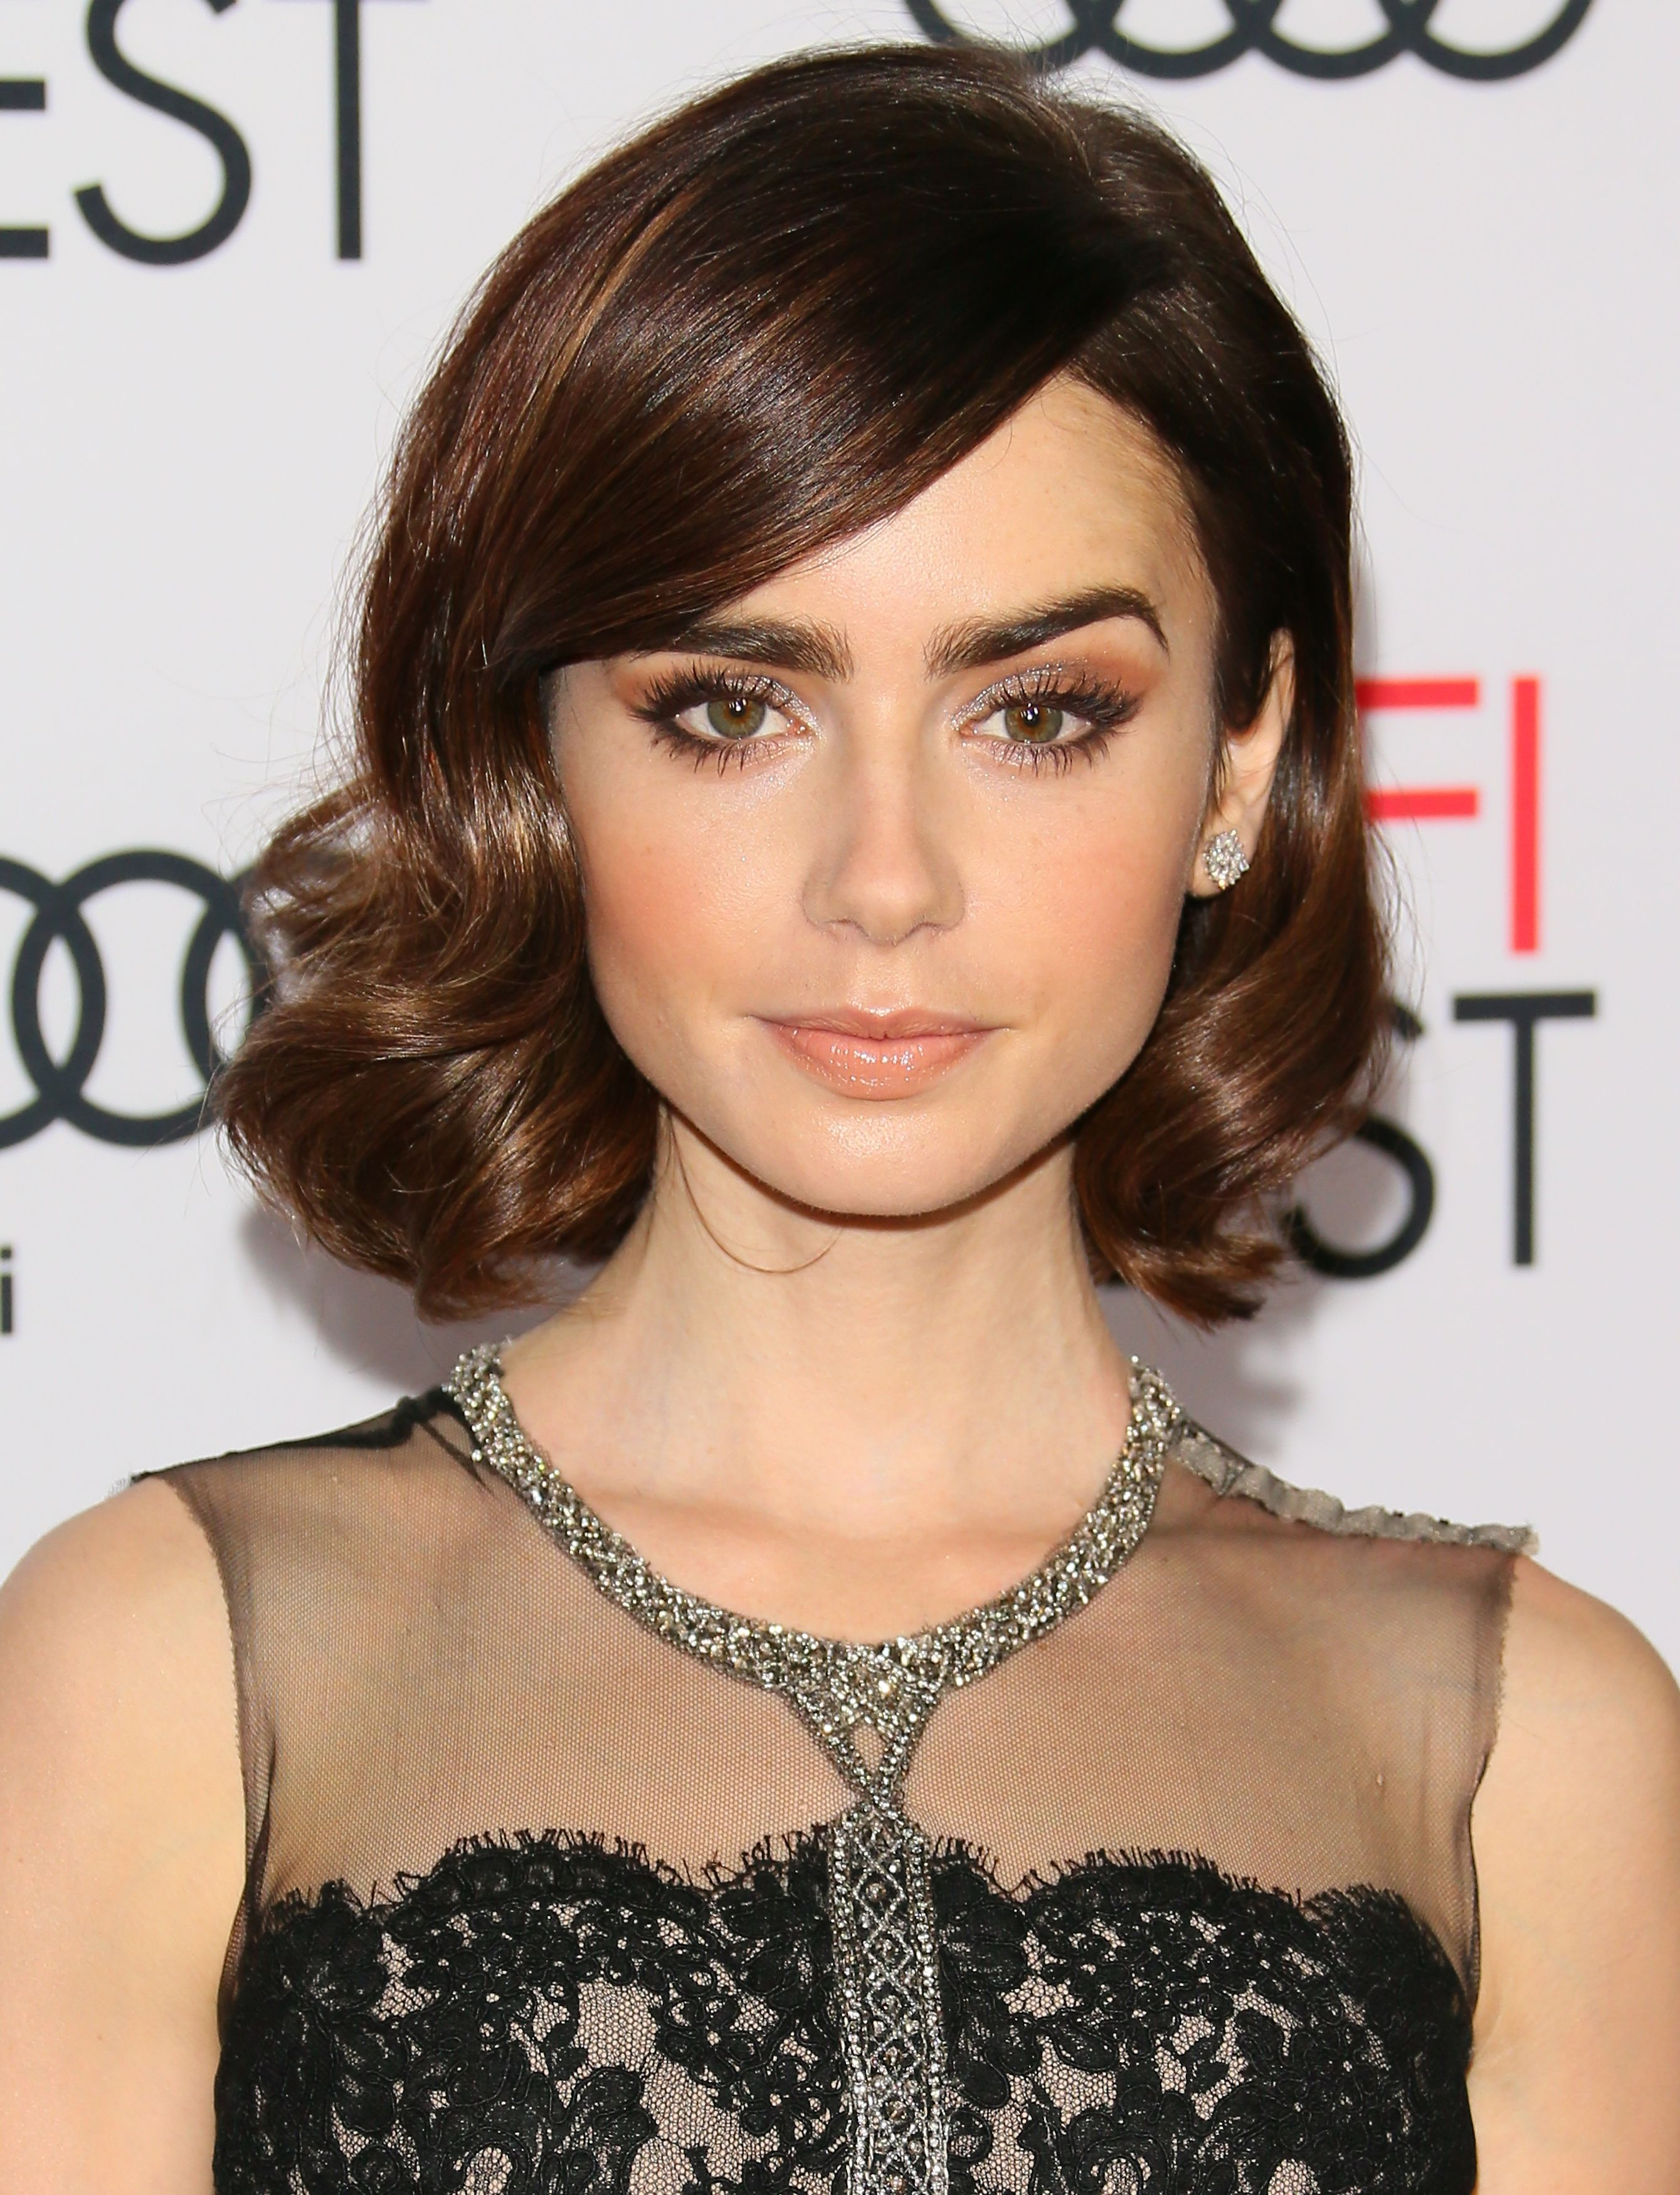 Celebrity Party Hairstyles From The Red Carpet To Steal